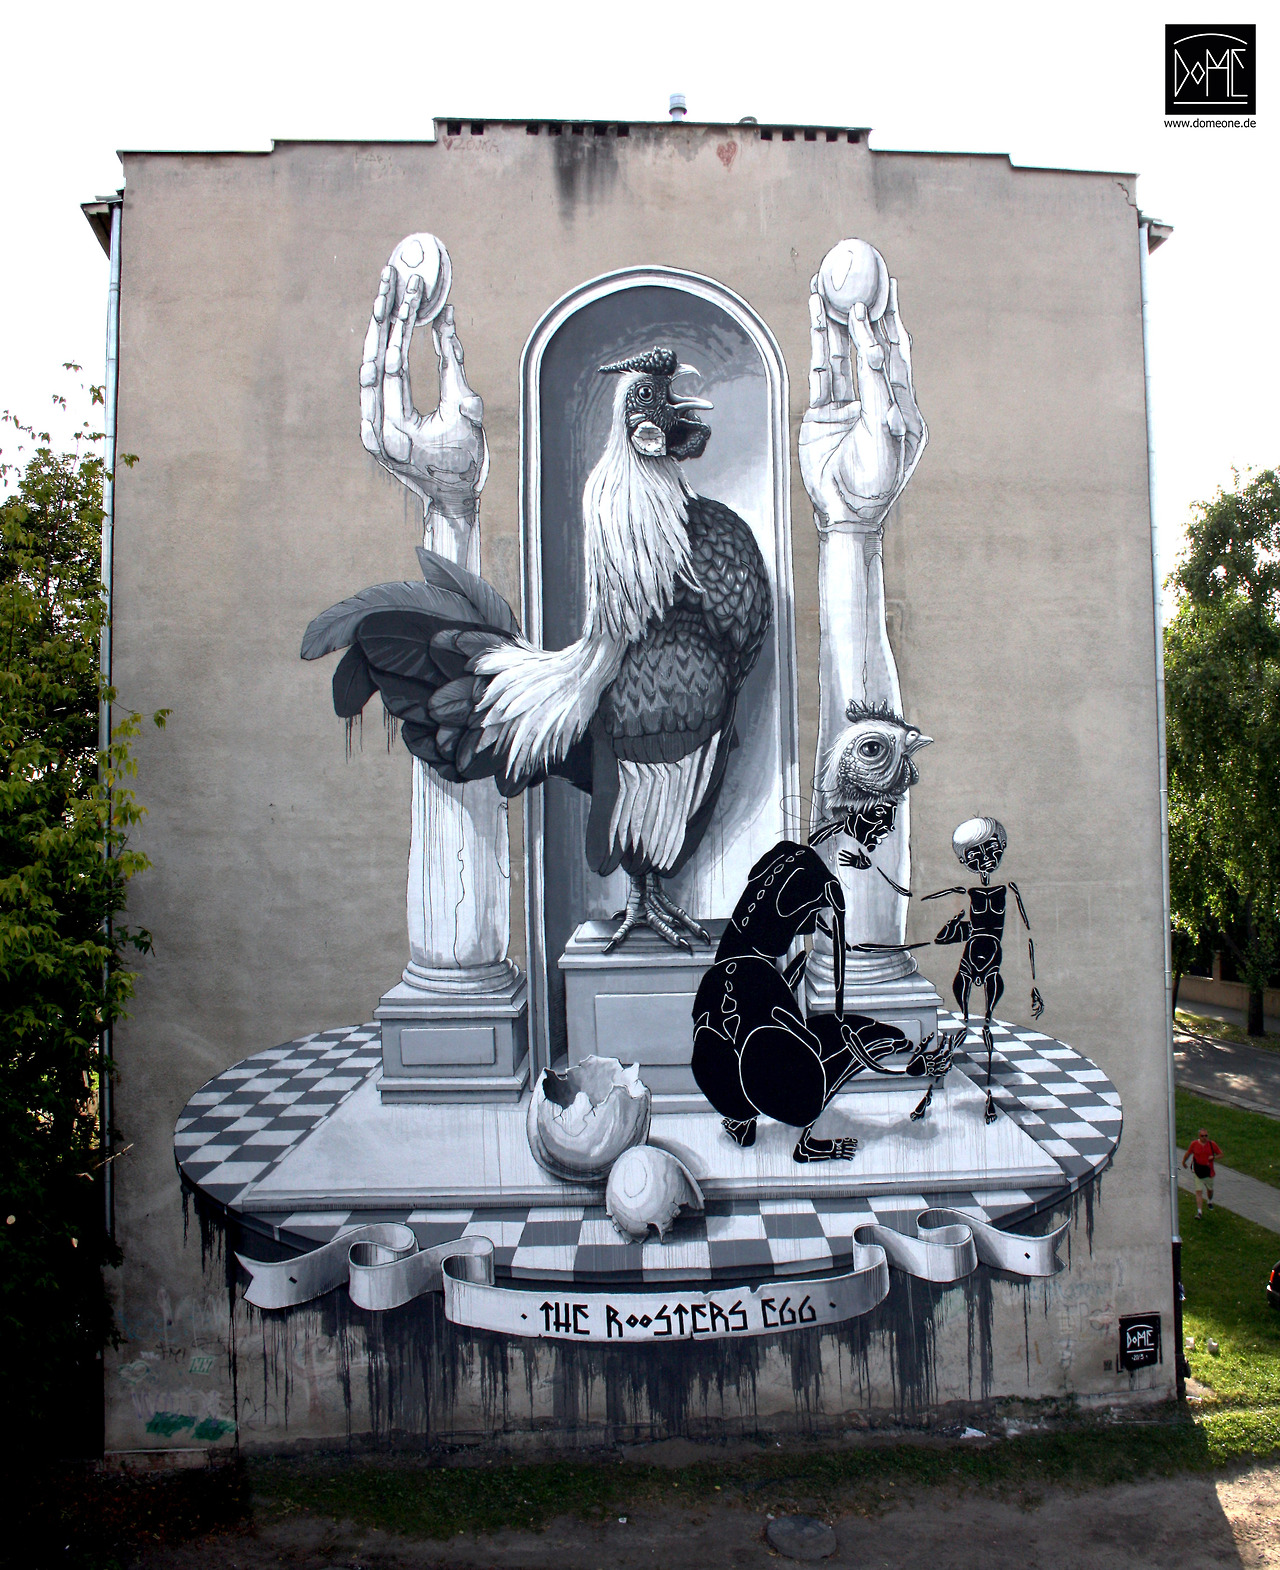 dome-the-roosters-egg-new-mural-in-warsaw-01